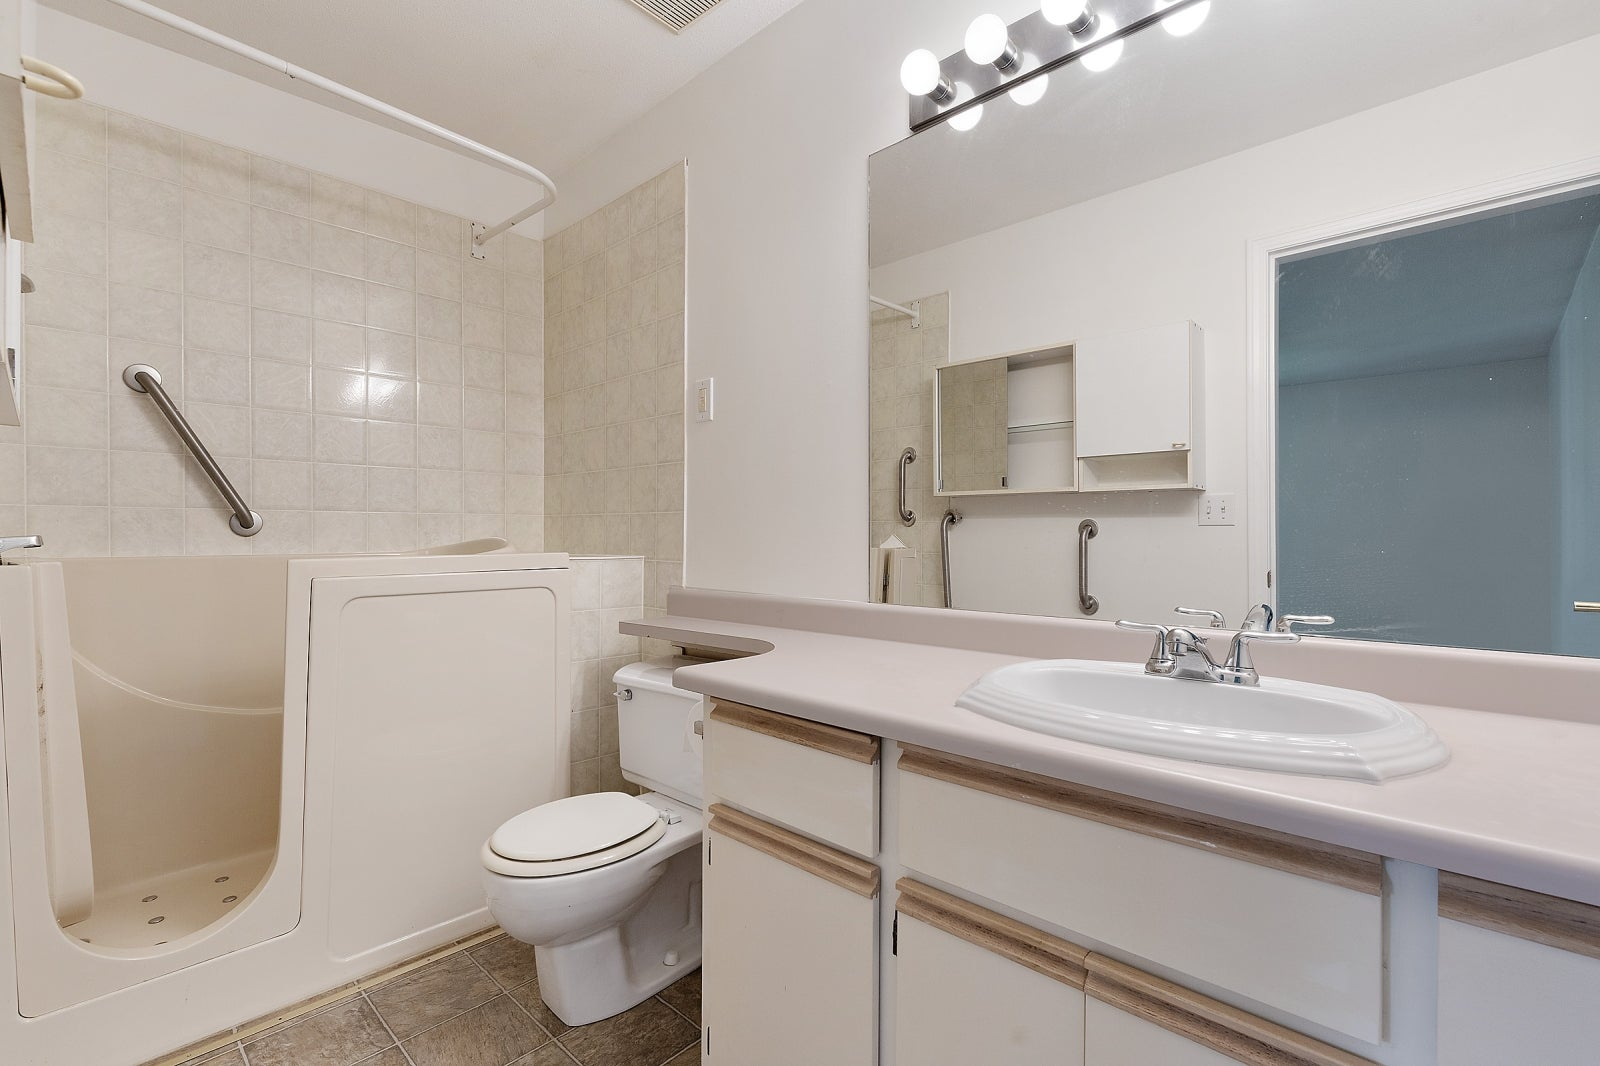 128 10172 141 STREET - Whalley Townhouse for sale, 2 Bedrooms (R2459213) #5